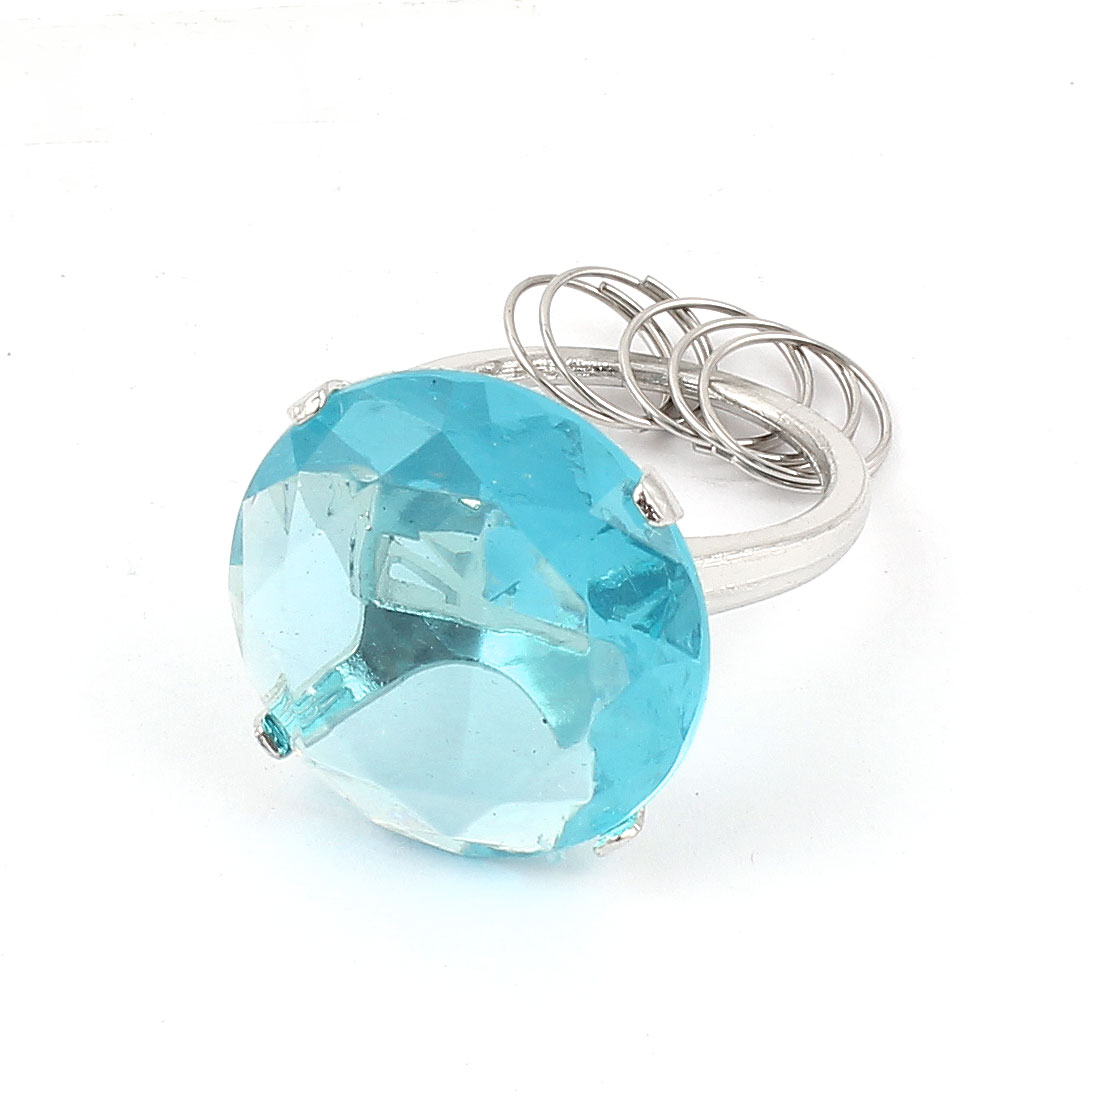 Clear Blue Faux Crystal Accent Circular Shape Ring Design Keyring Chain